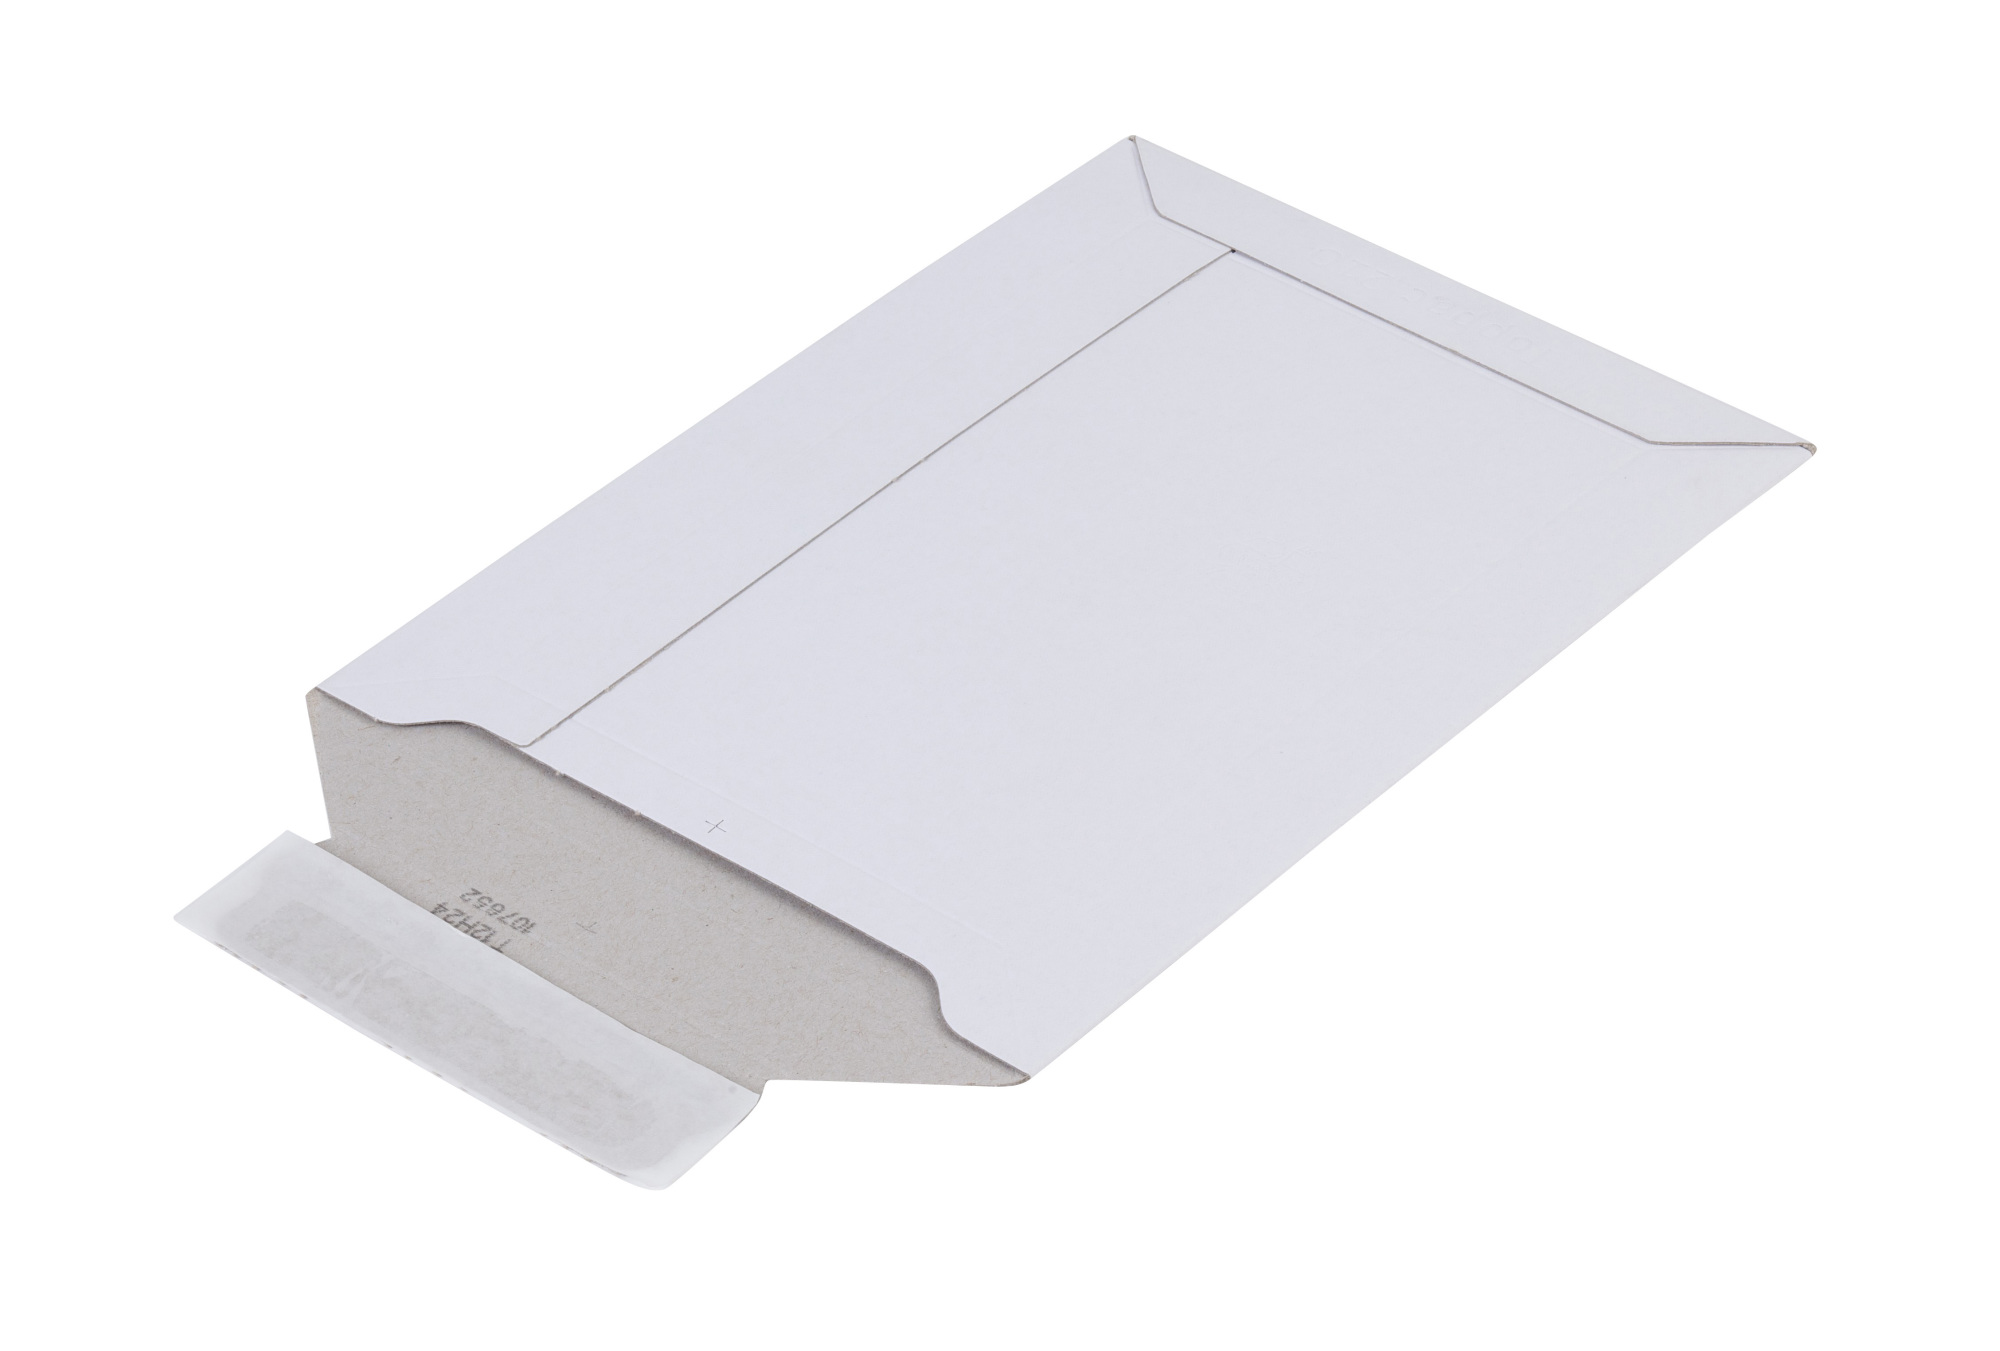 295 x 375mm Toppac White Solid Board Mailing Envelopes